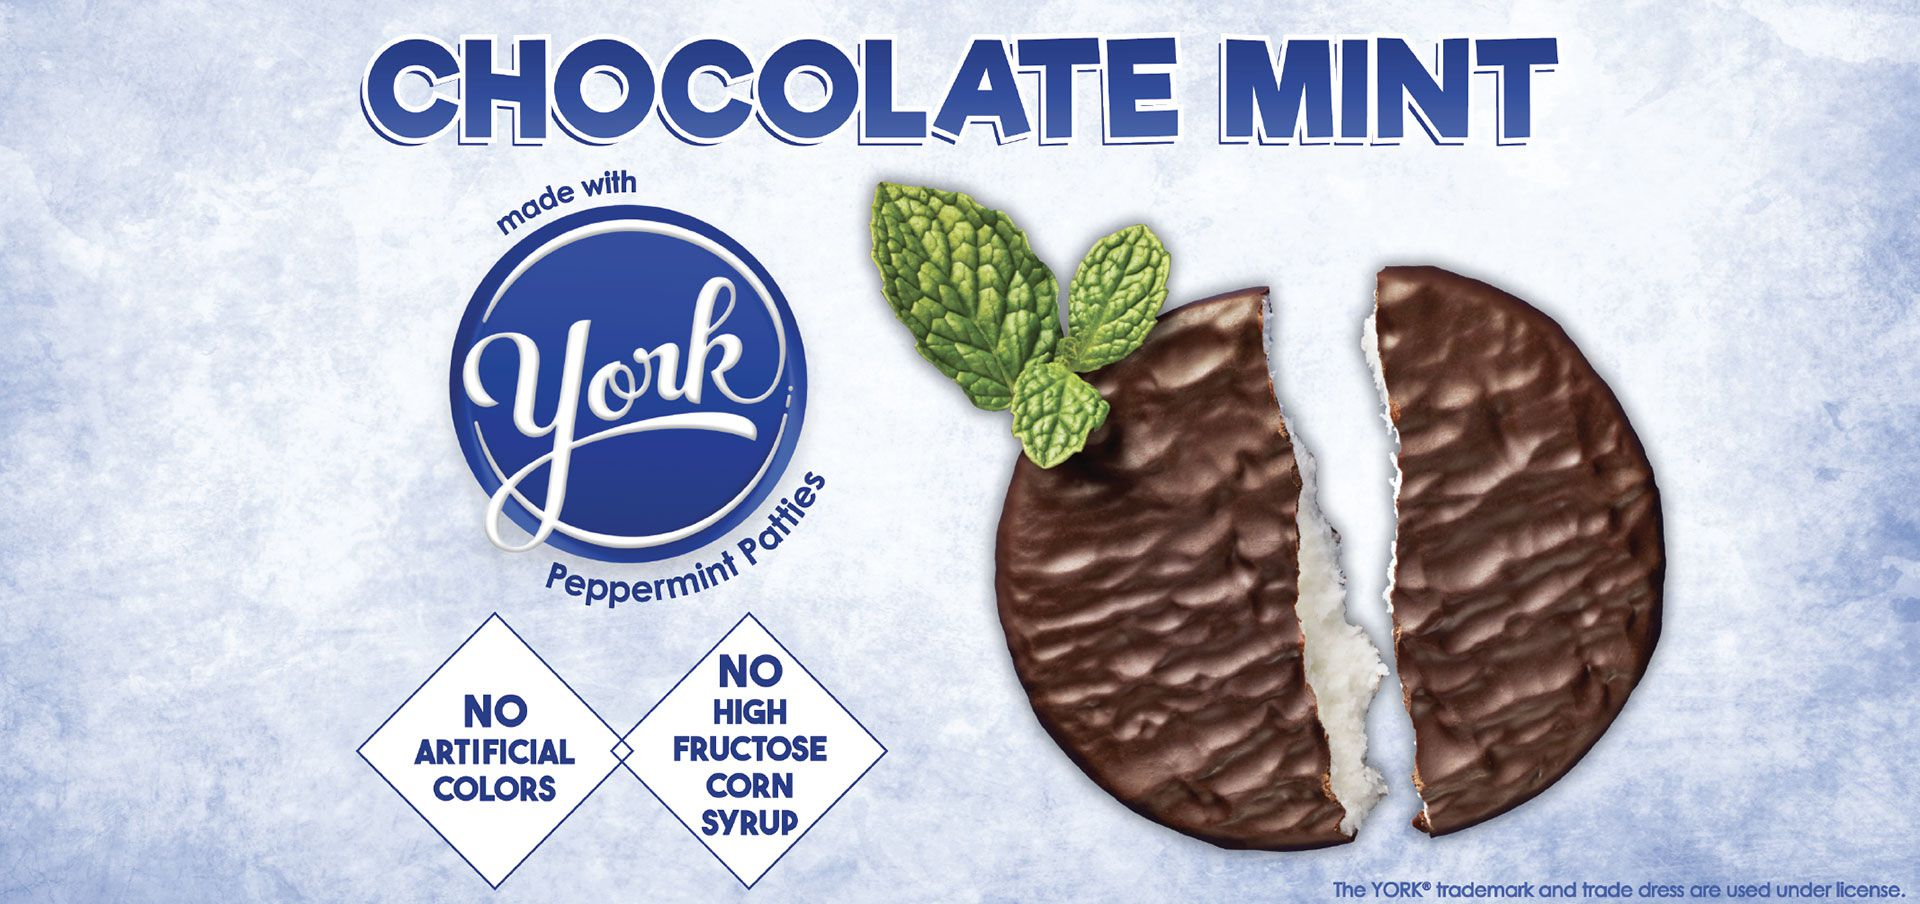 chocolate mint made with york® peppermint patties label image